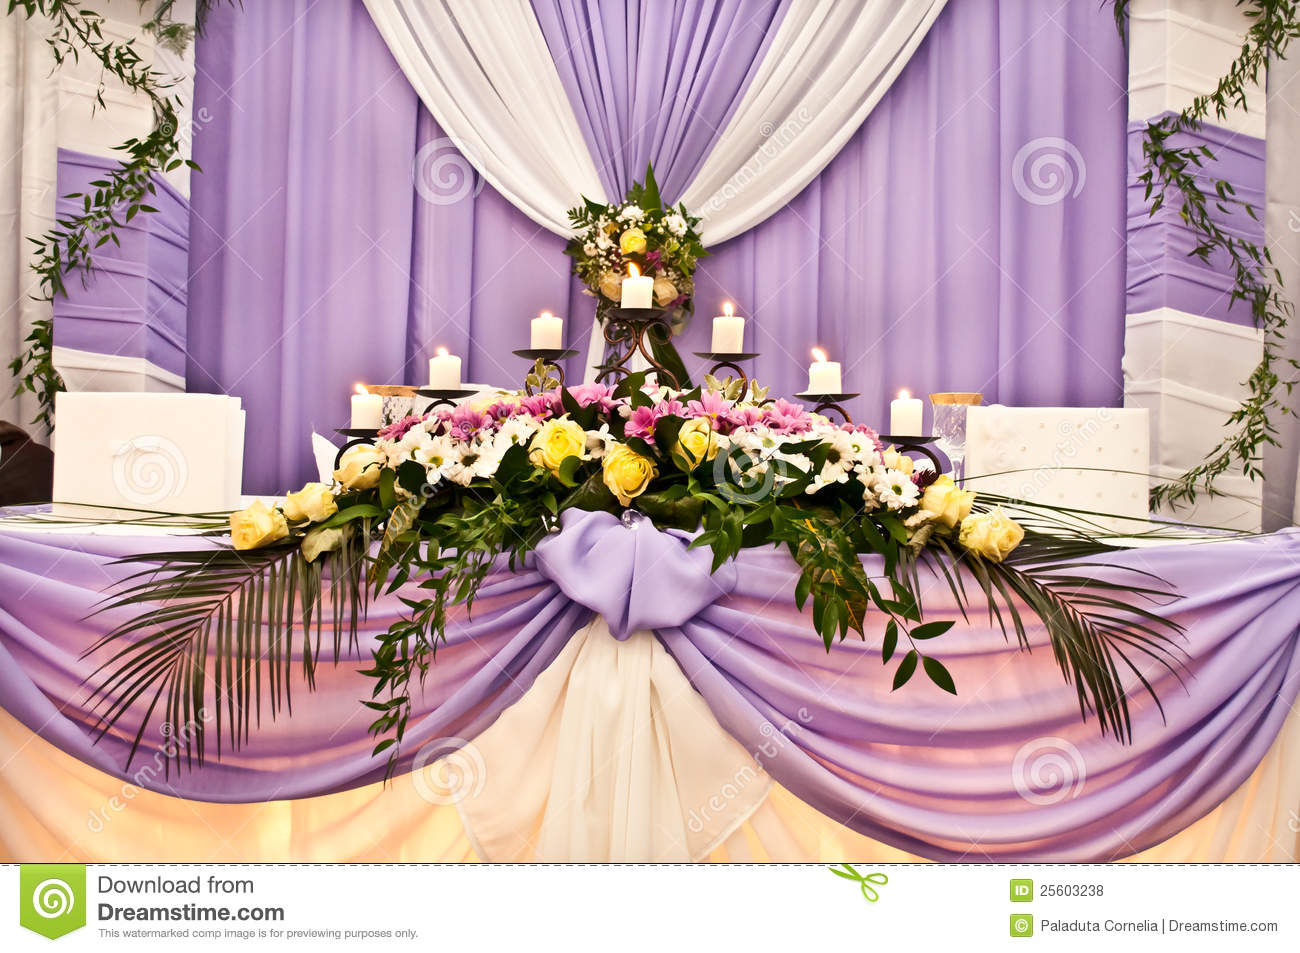 Wedding Table For Newlyweds Royalty Free Stock Photos